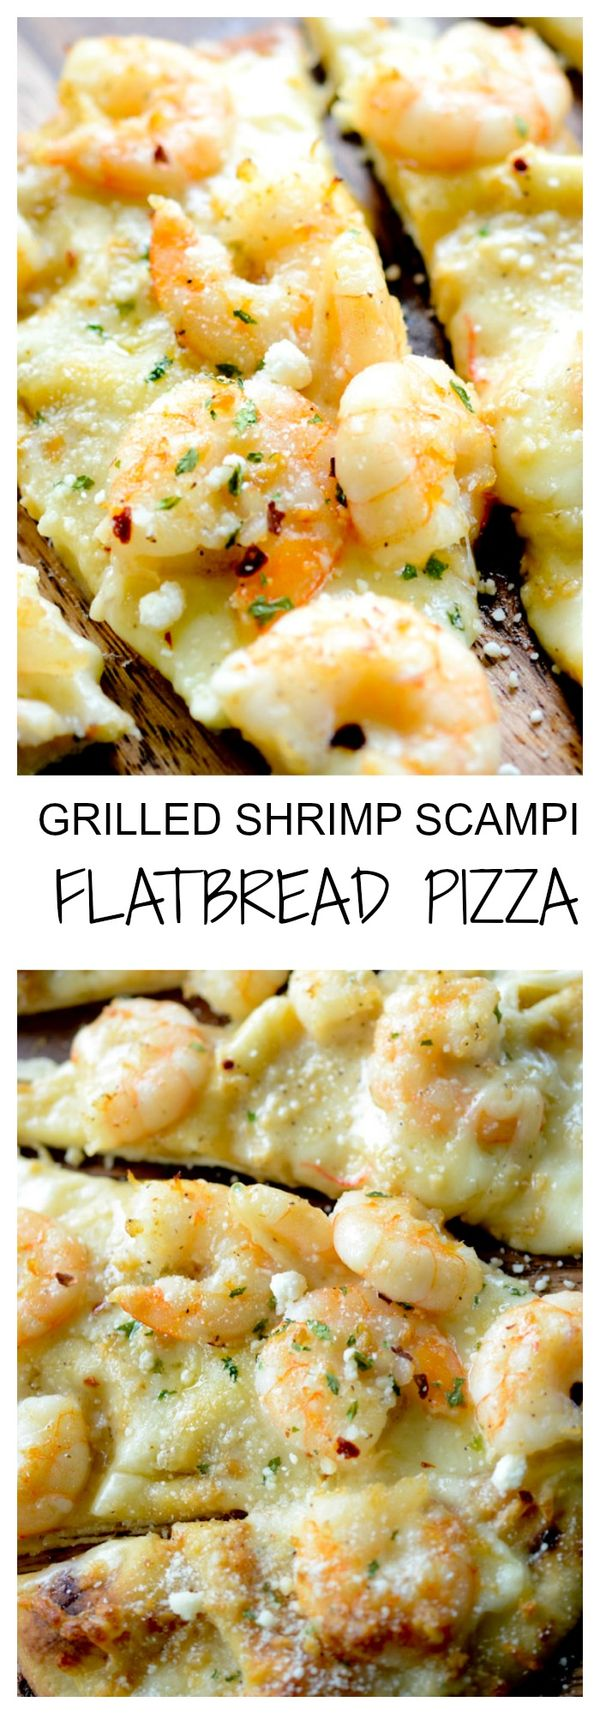 Grilled Shrimp Scampi Flat Bread Pizza